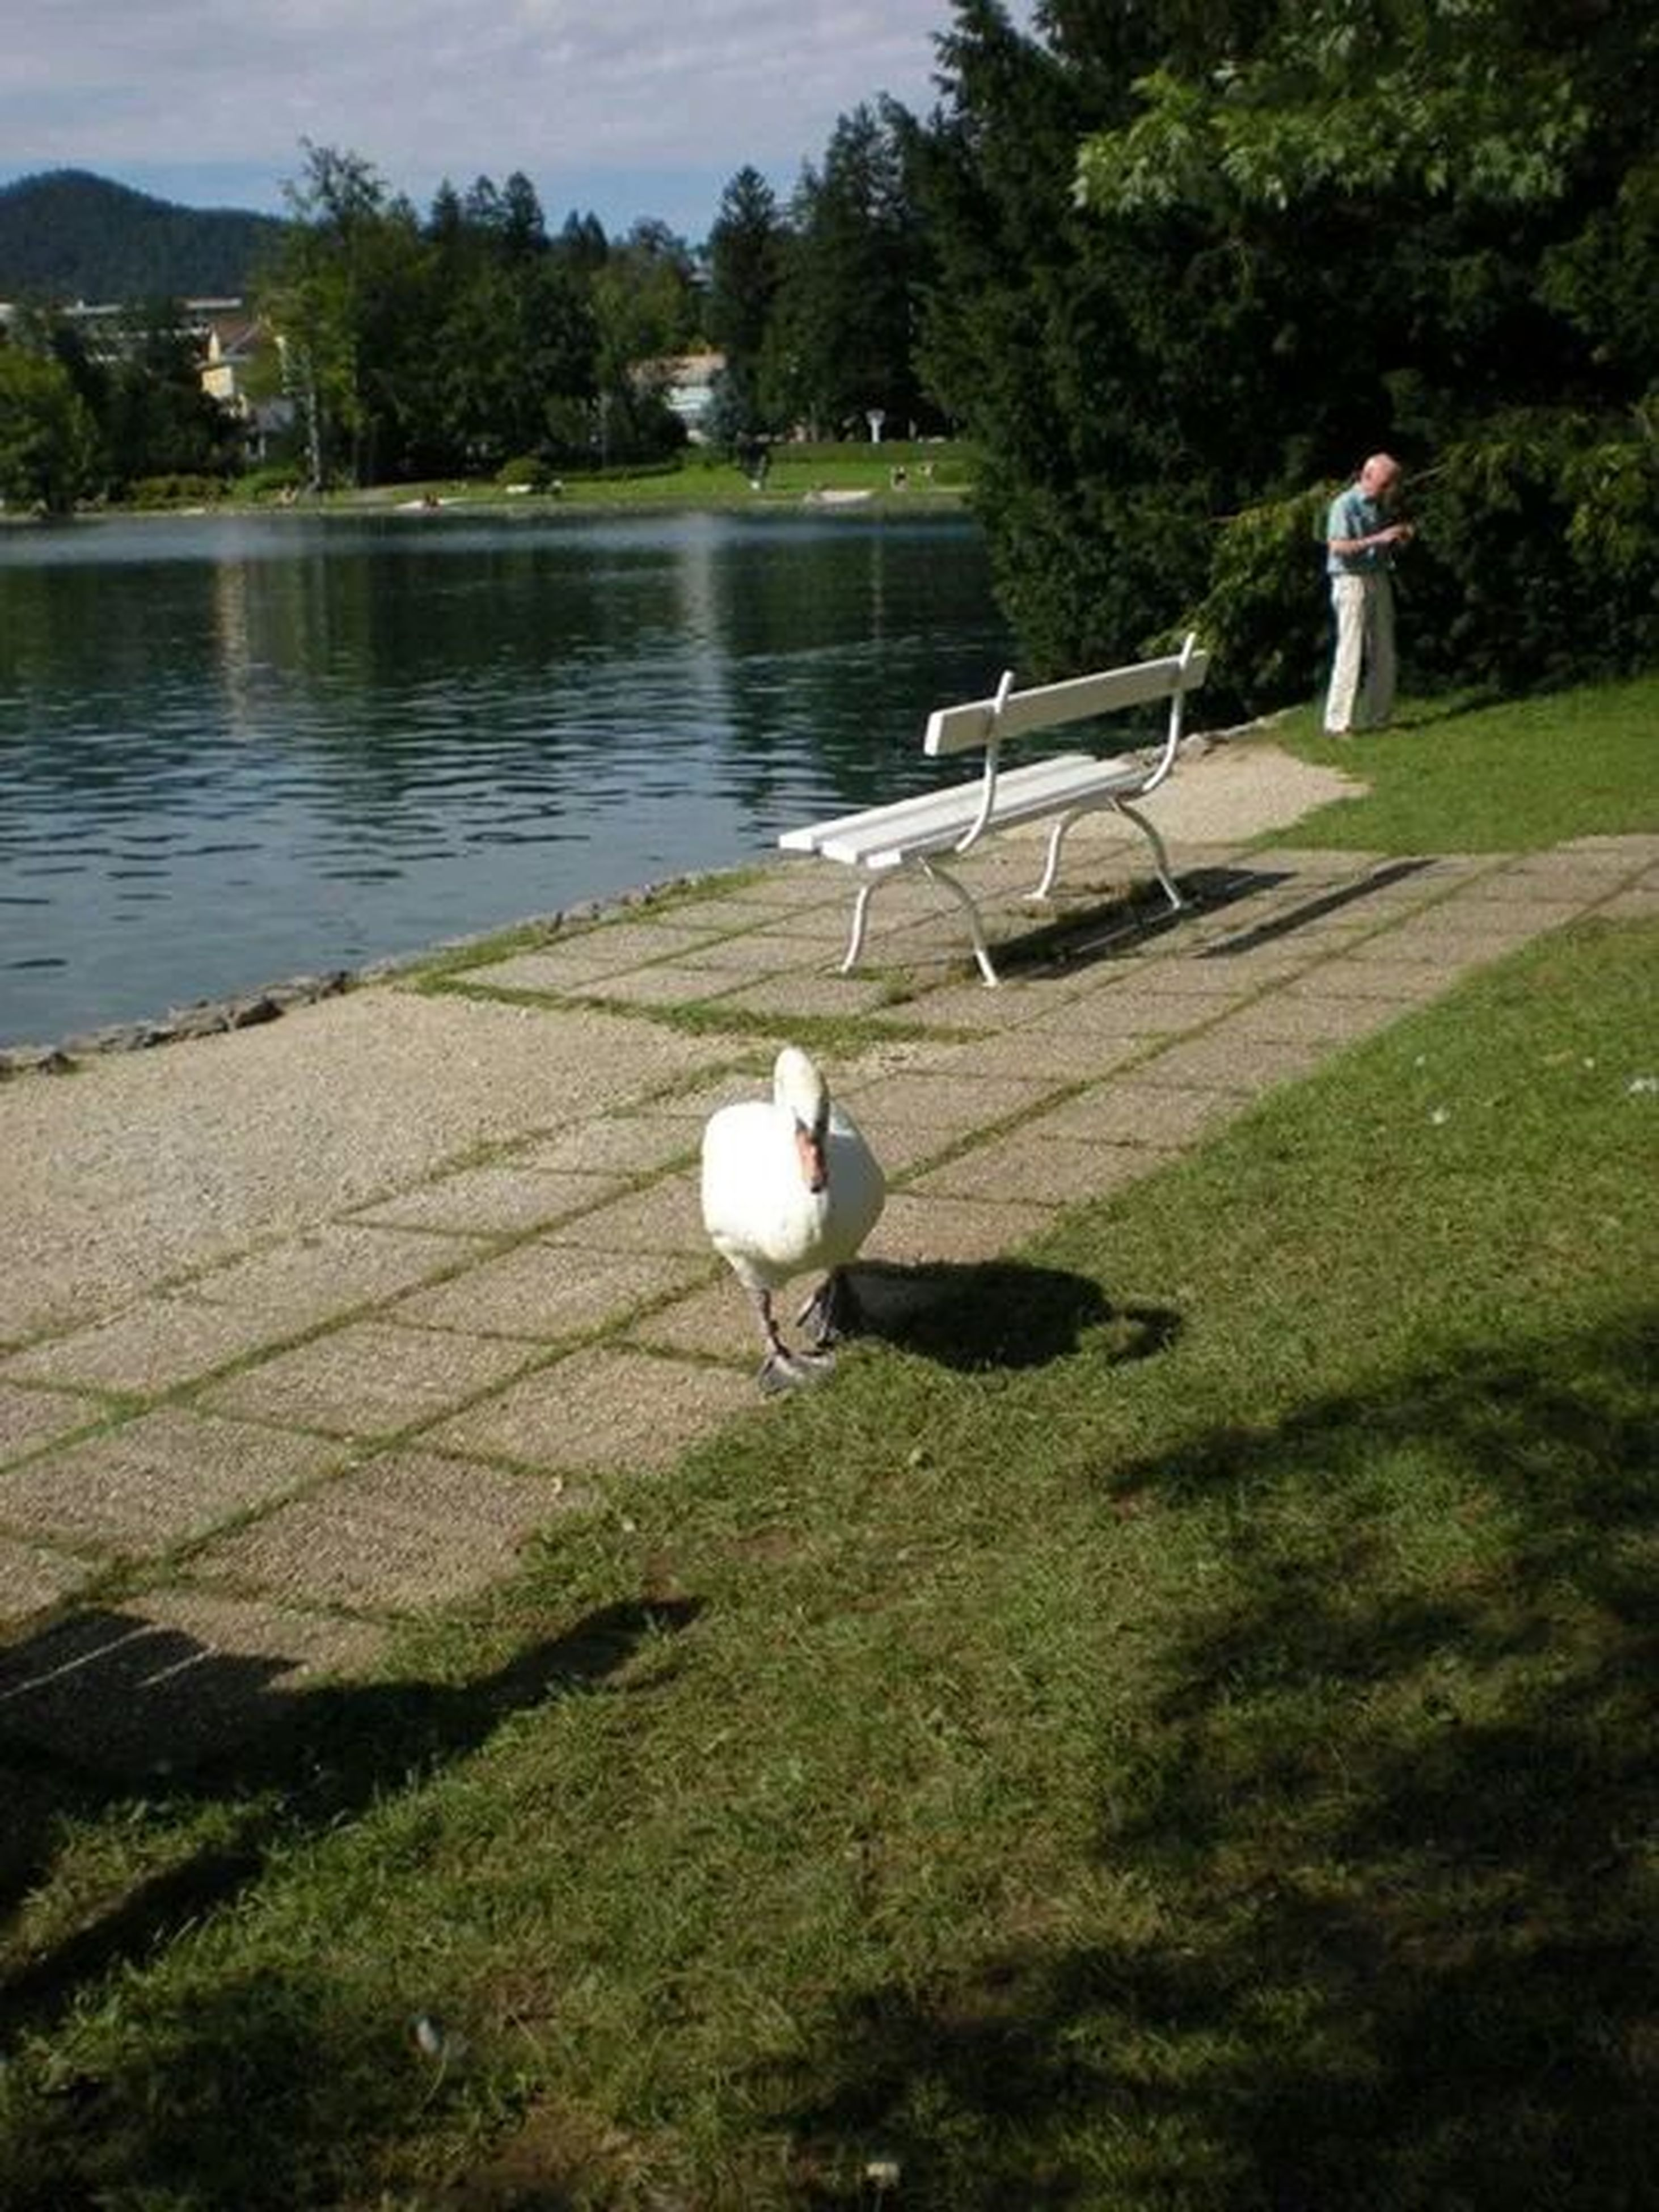 bird, water, lake, grass, full length, swan, animal themes, rear view, tree, nature, wildlife, animals in the wild, tranquility, outdoors, river, one animal, day, standing